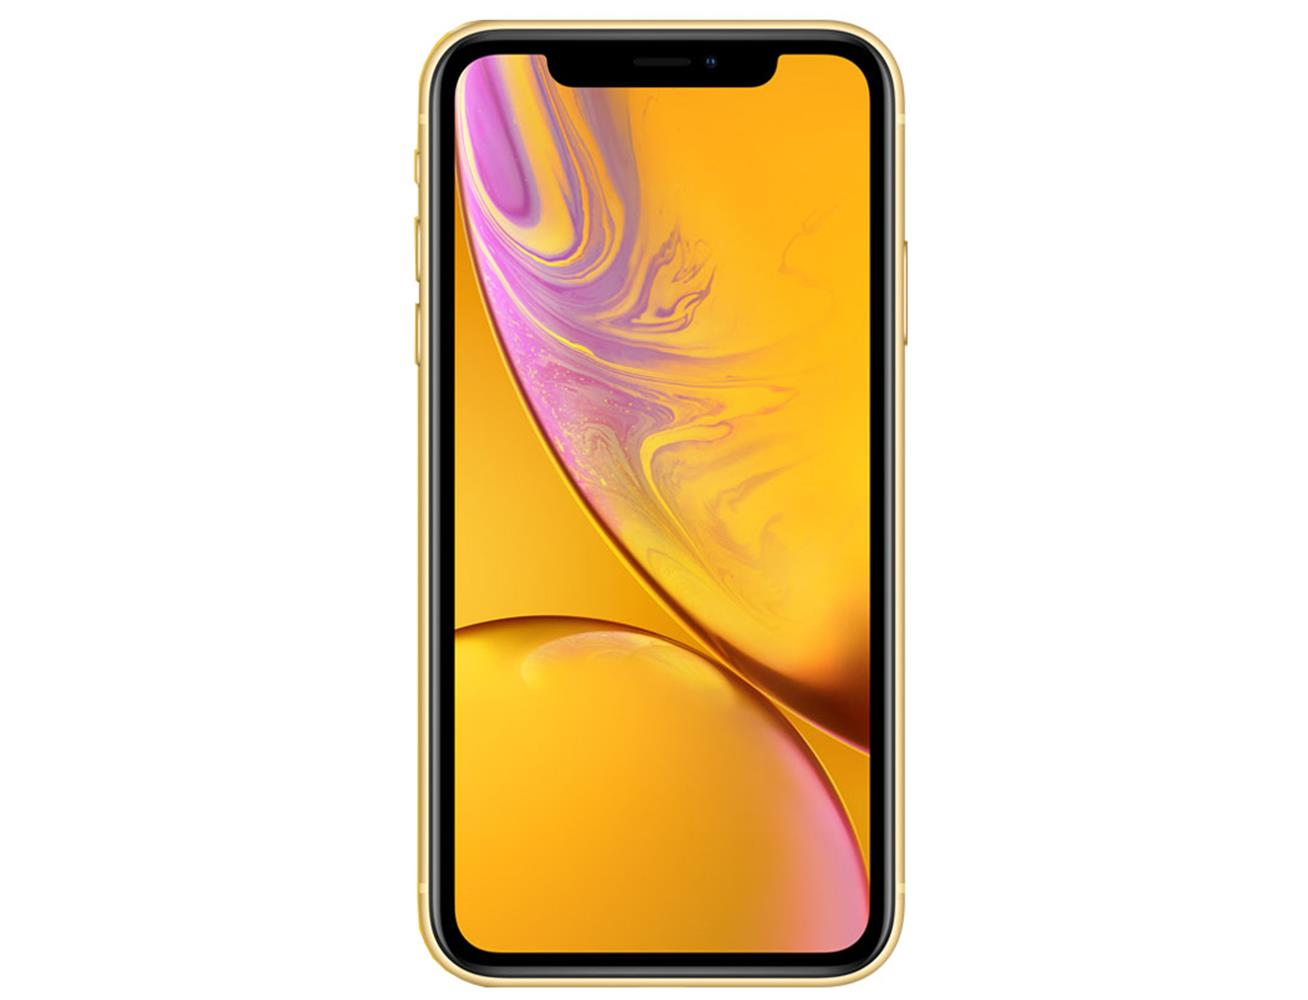 Apple Iphone Xr 64gb Yellow Price In Kuwait Buy Online At Blink